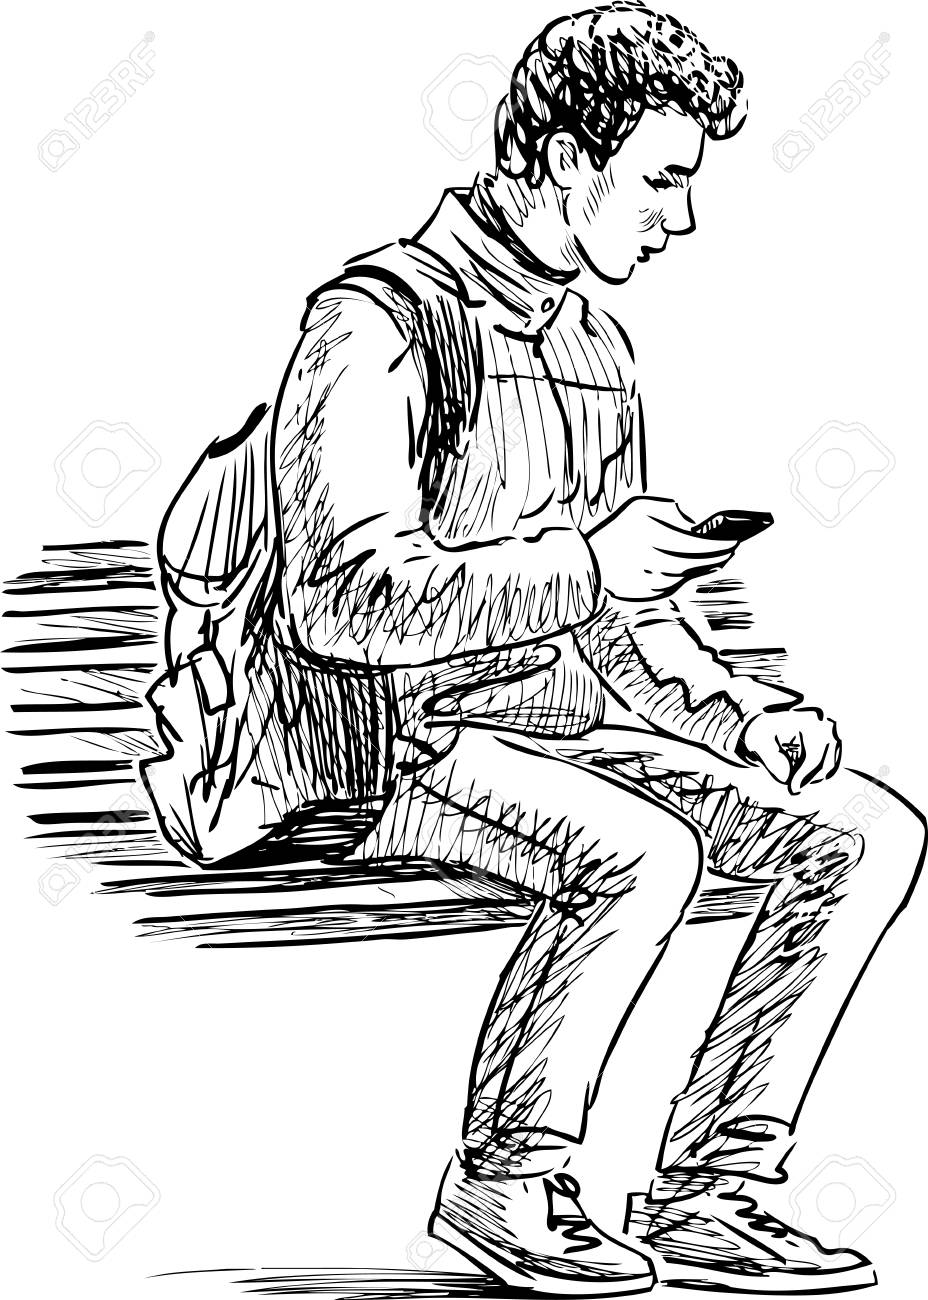 928x1300 Vector Sketch Of A Student With A Cell Phone Sitting On A Park